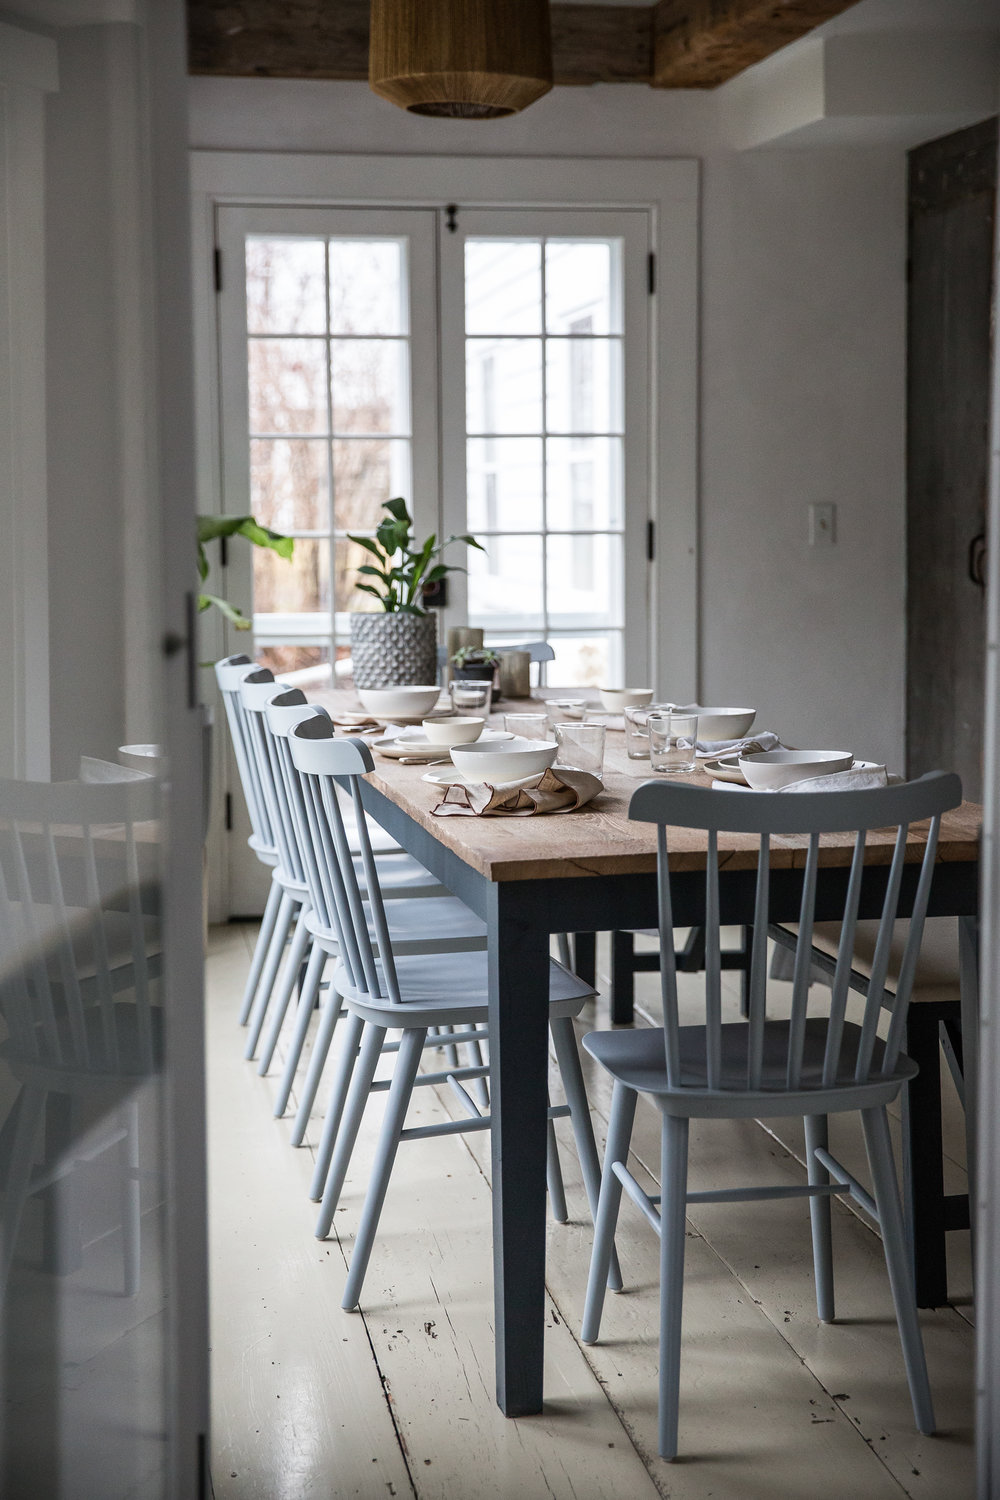 Jersey-Ice-Cream-Co.-Old-Chatham-House-Remodelista-dining-table.jpg